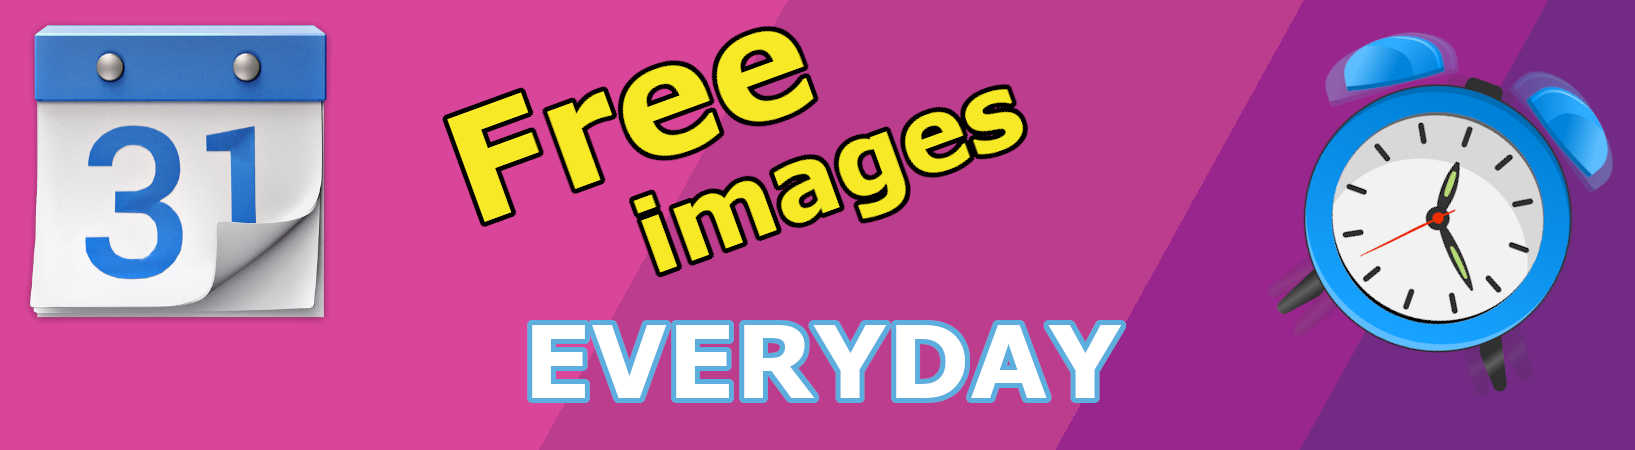 Free images EVERYDAY